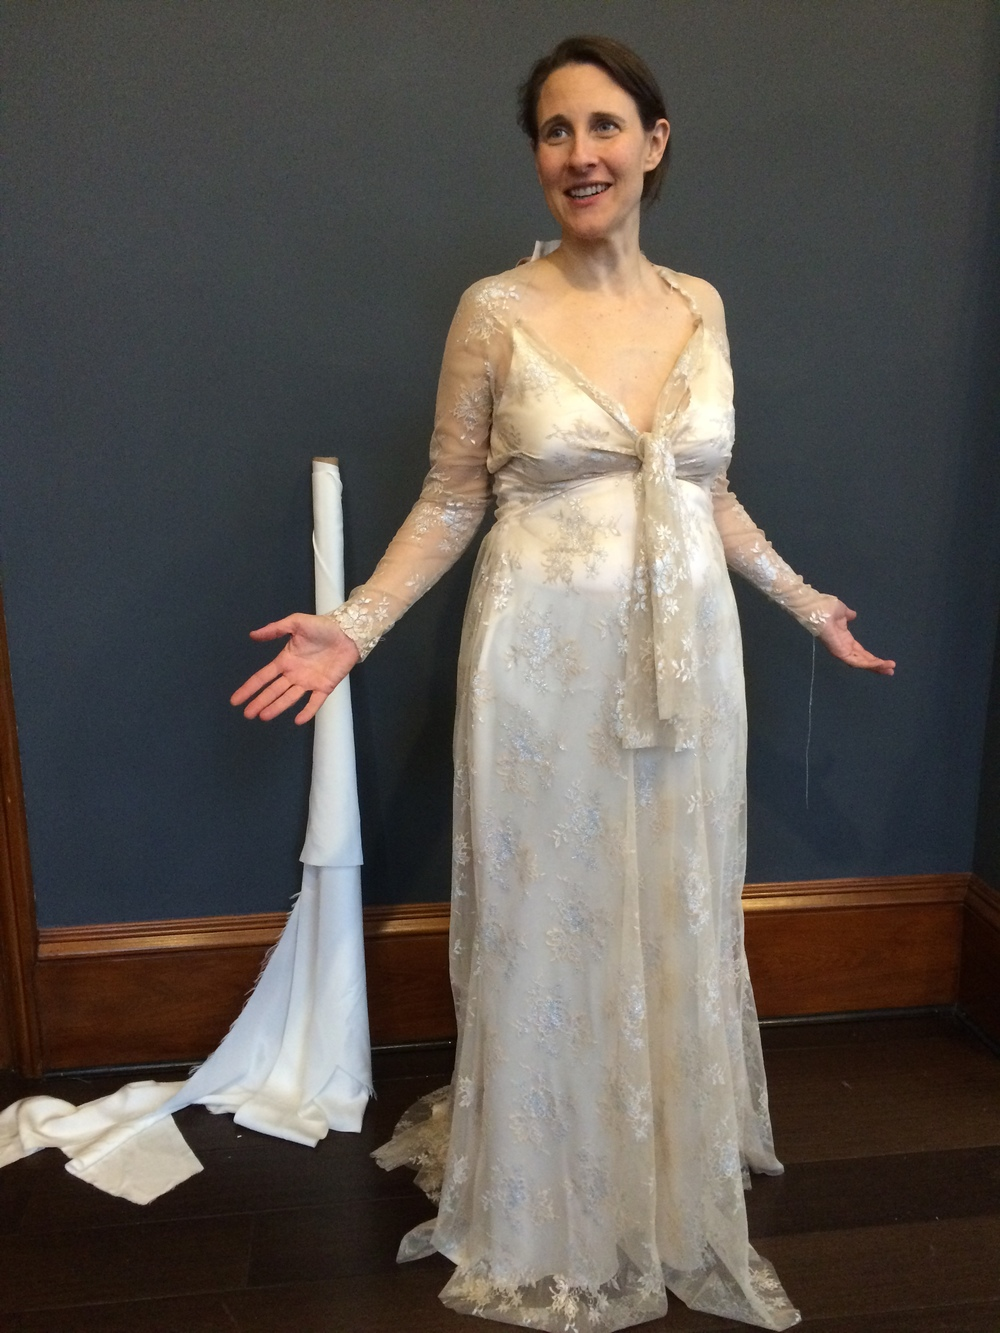 Bride trying on unfinished dress